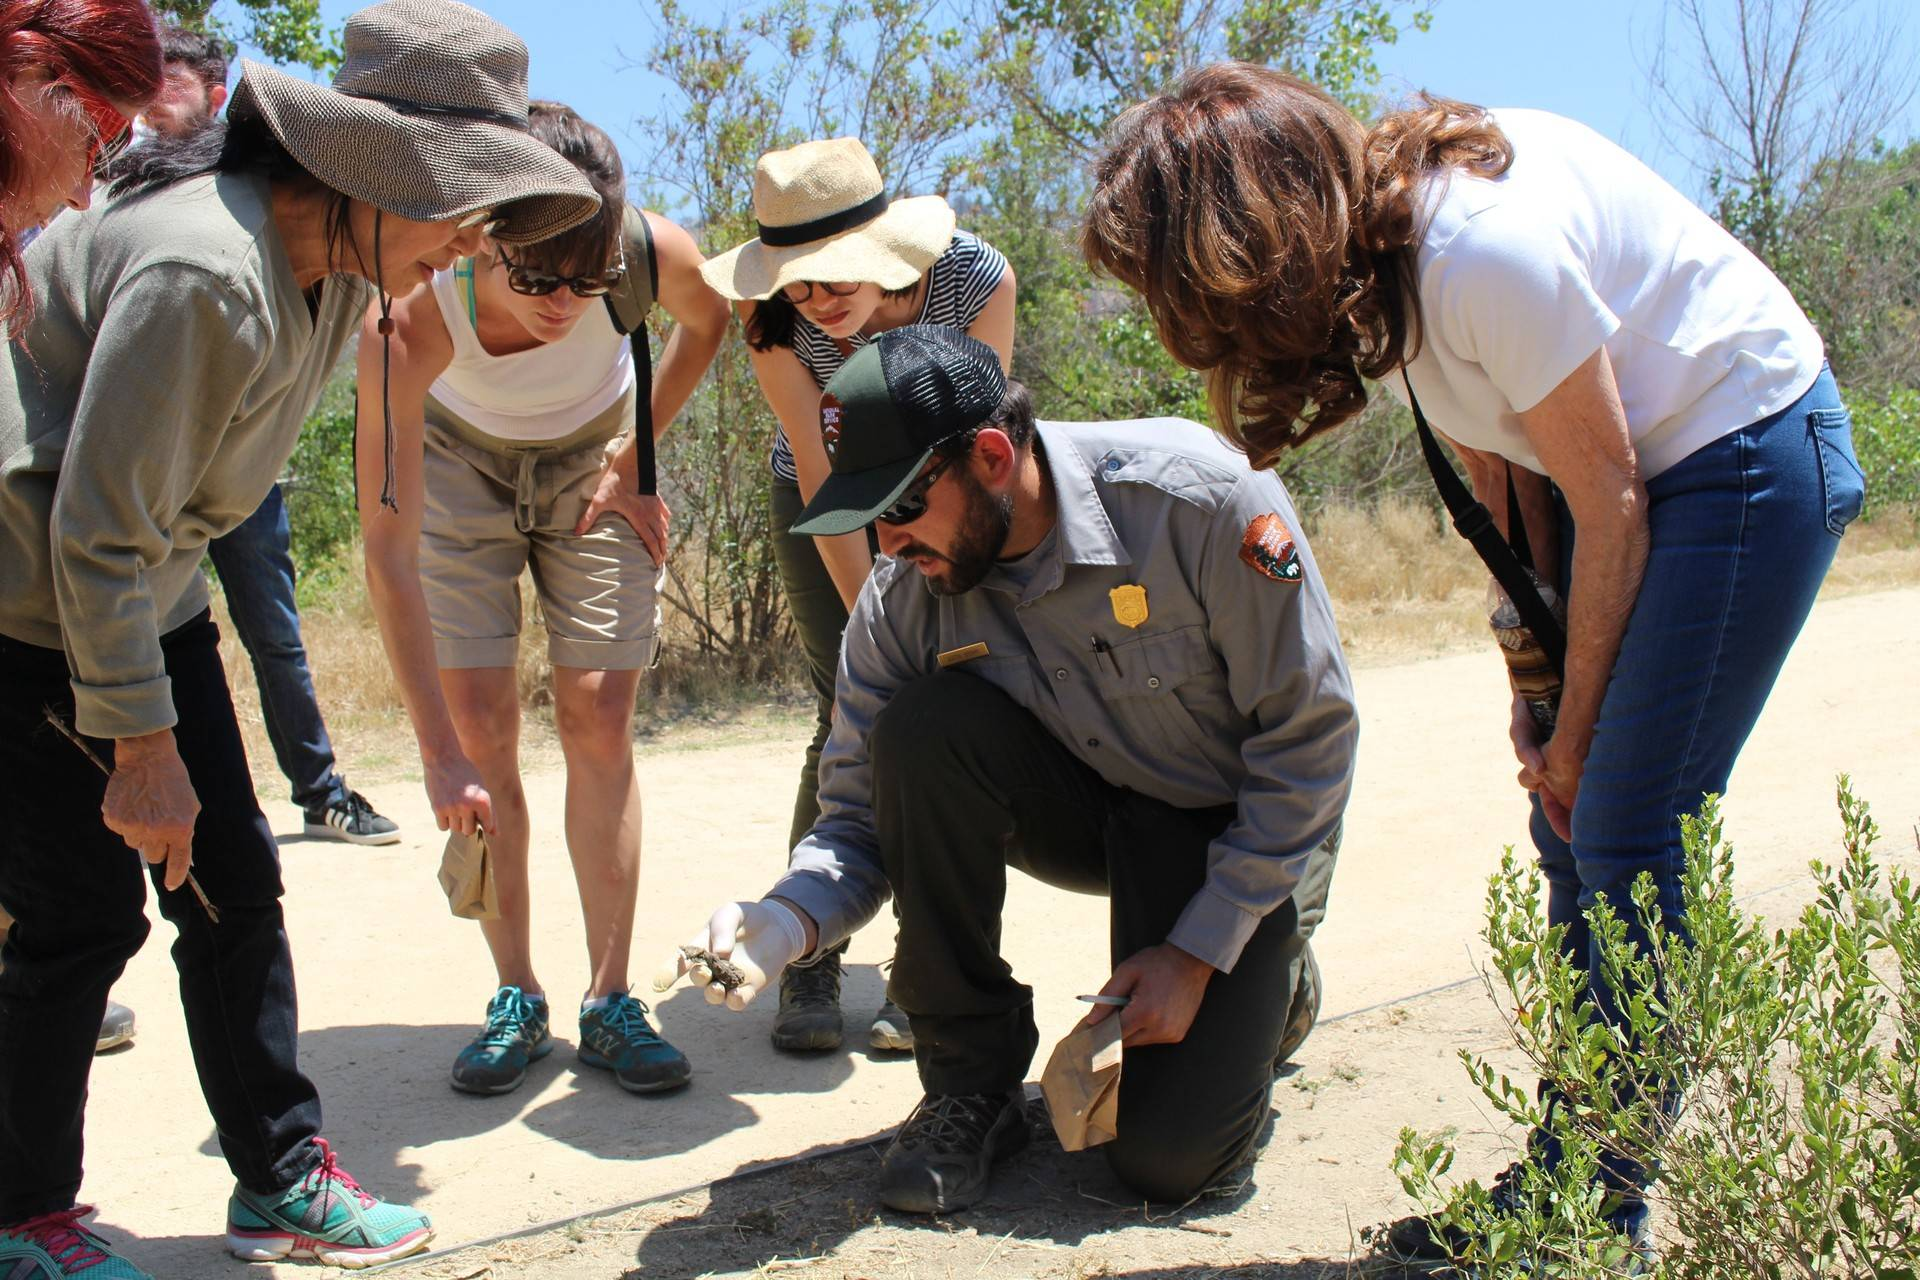 Justin Brown, a National Park Service ecologist who conducts coyote field research, shows volunteers how to identify coyote scat in Rio de Los Angeles State Park. Avishay Artsy/KQED